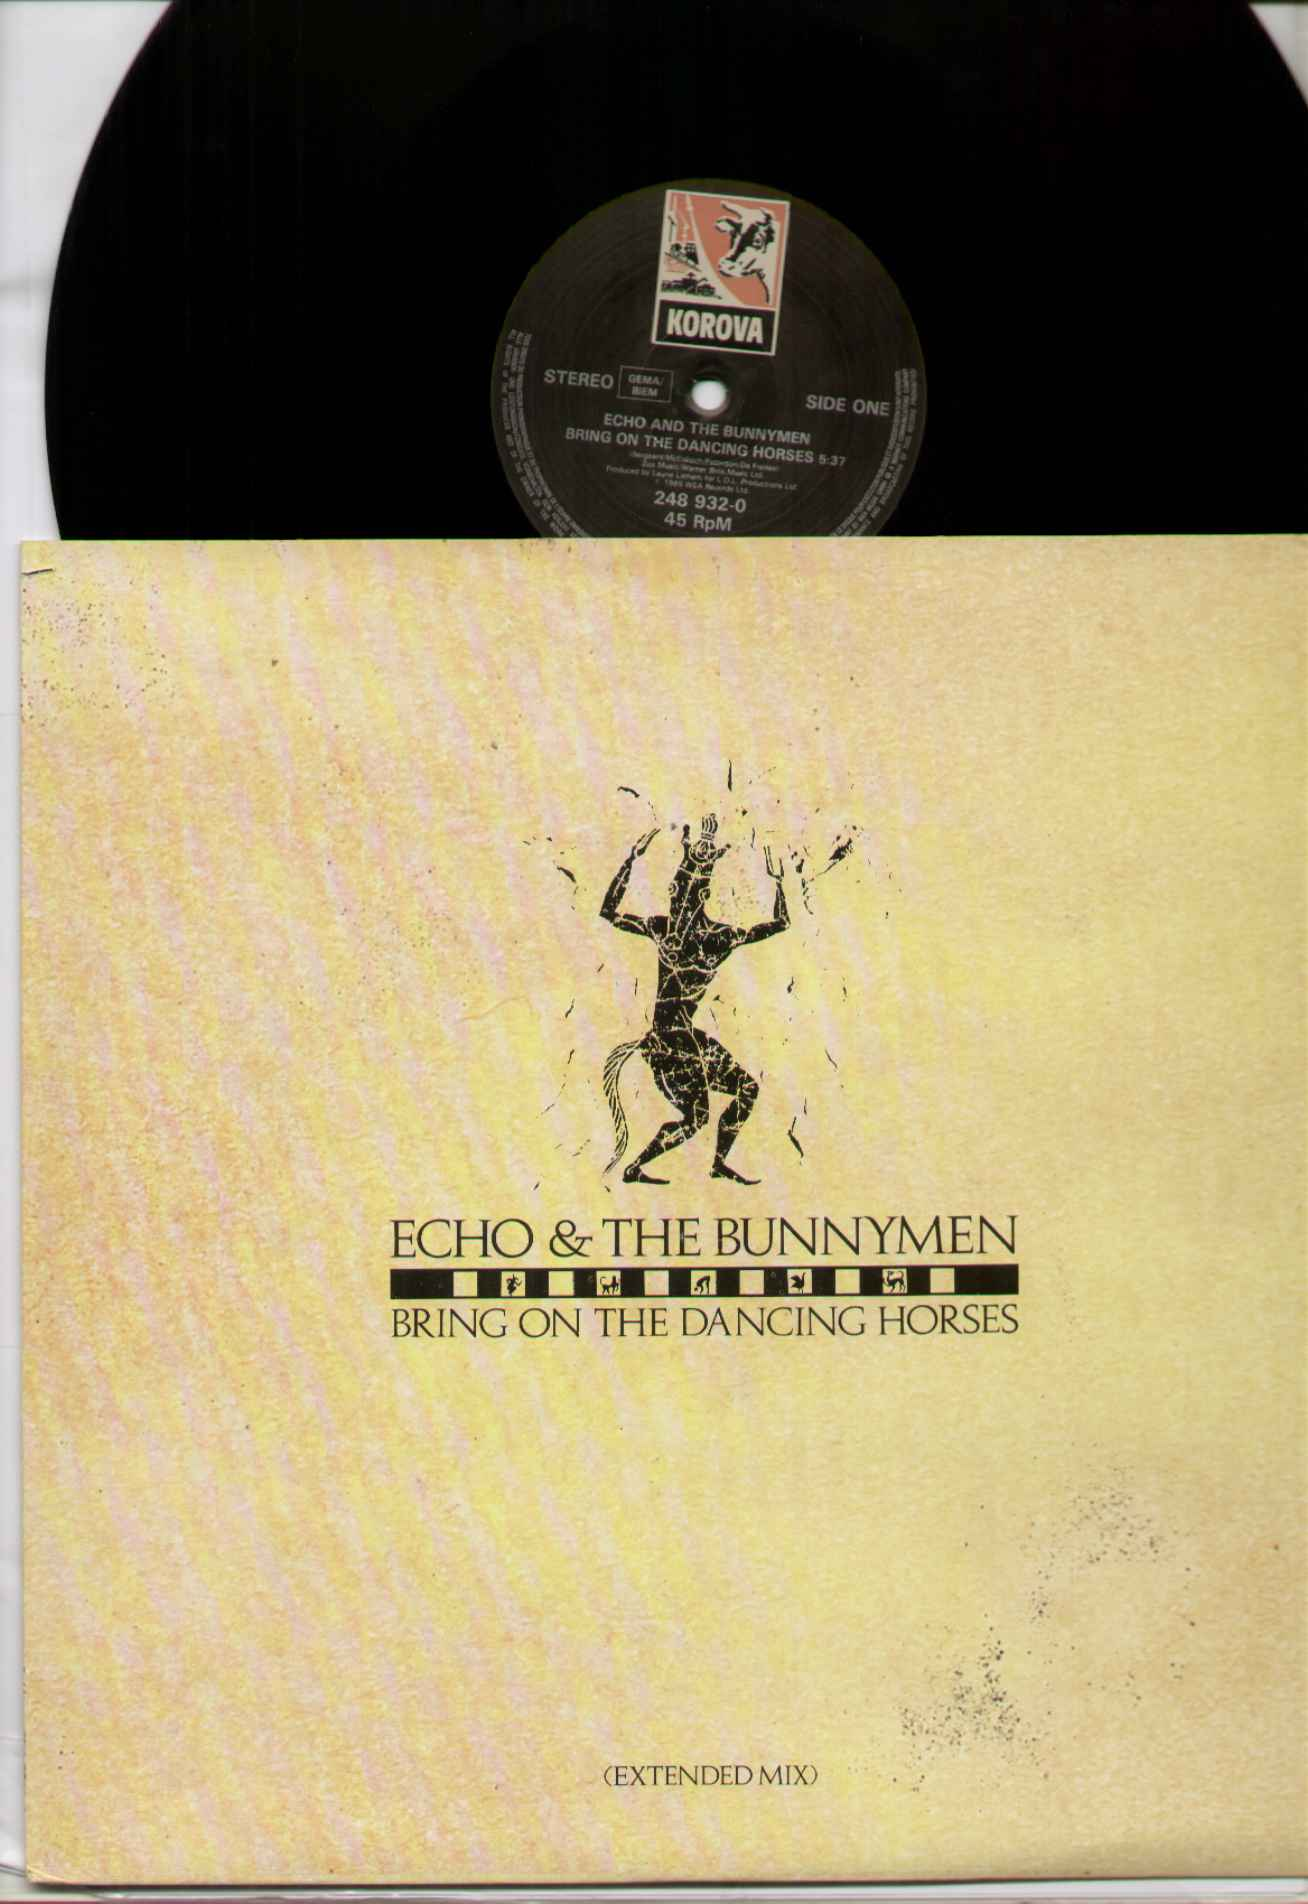 ECHO AND THE BUNNYMEN - Bring On The Dancing Horses - 12 Inch Pressed In Germany - 12 inch 45 rpm